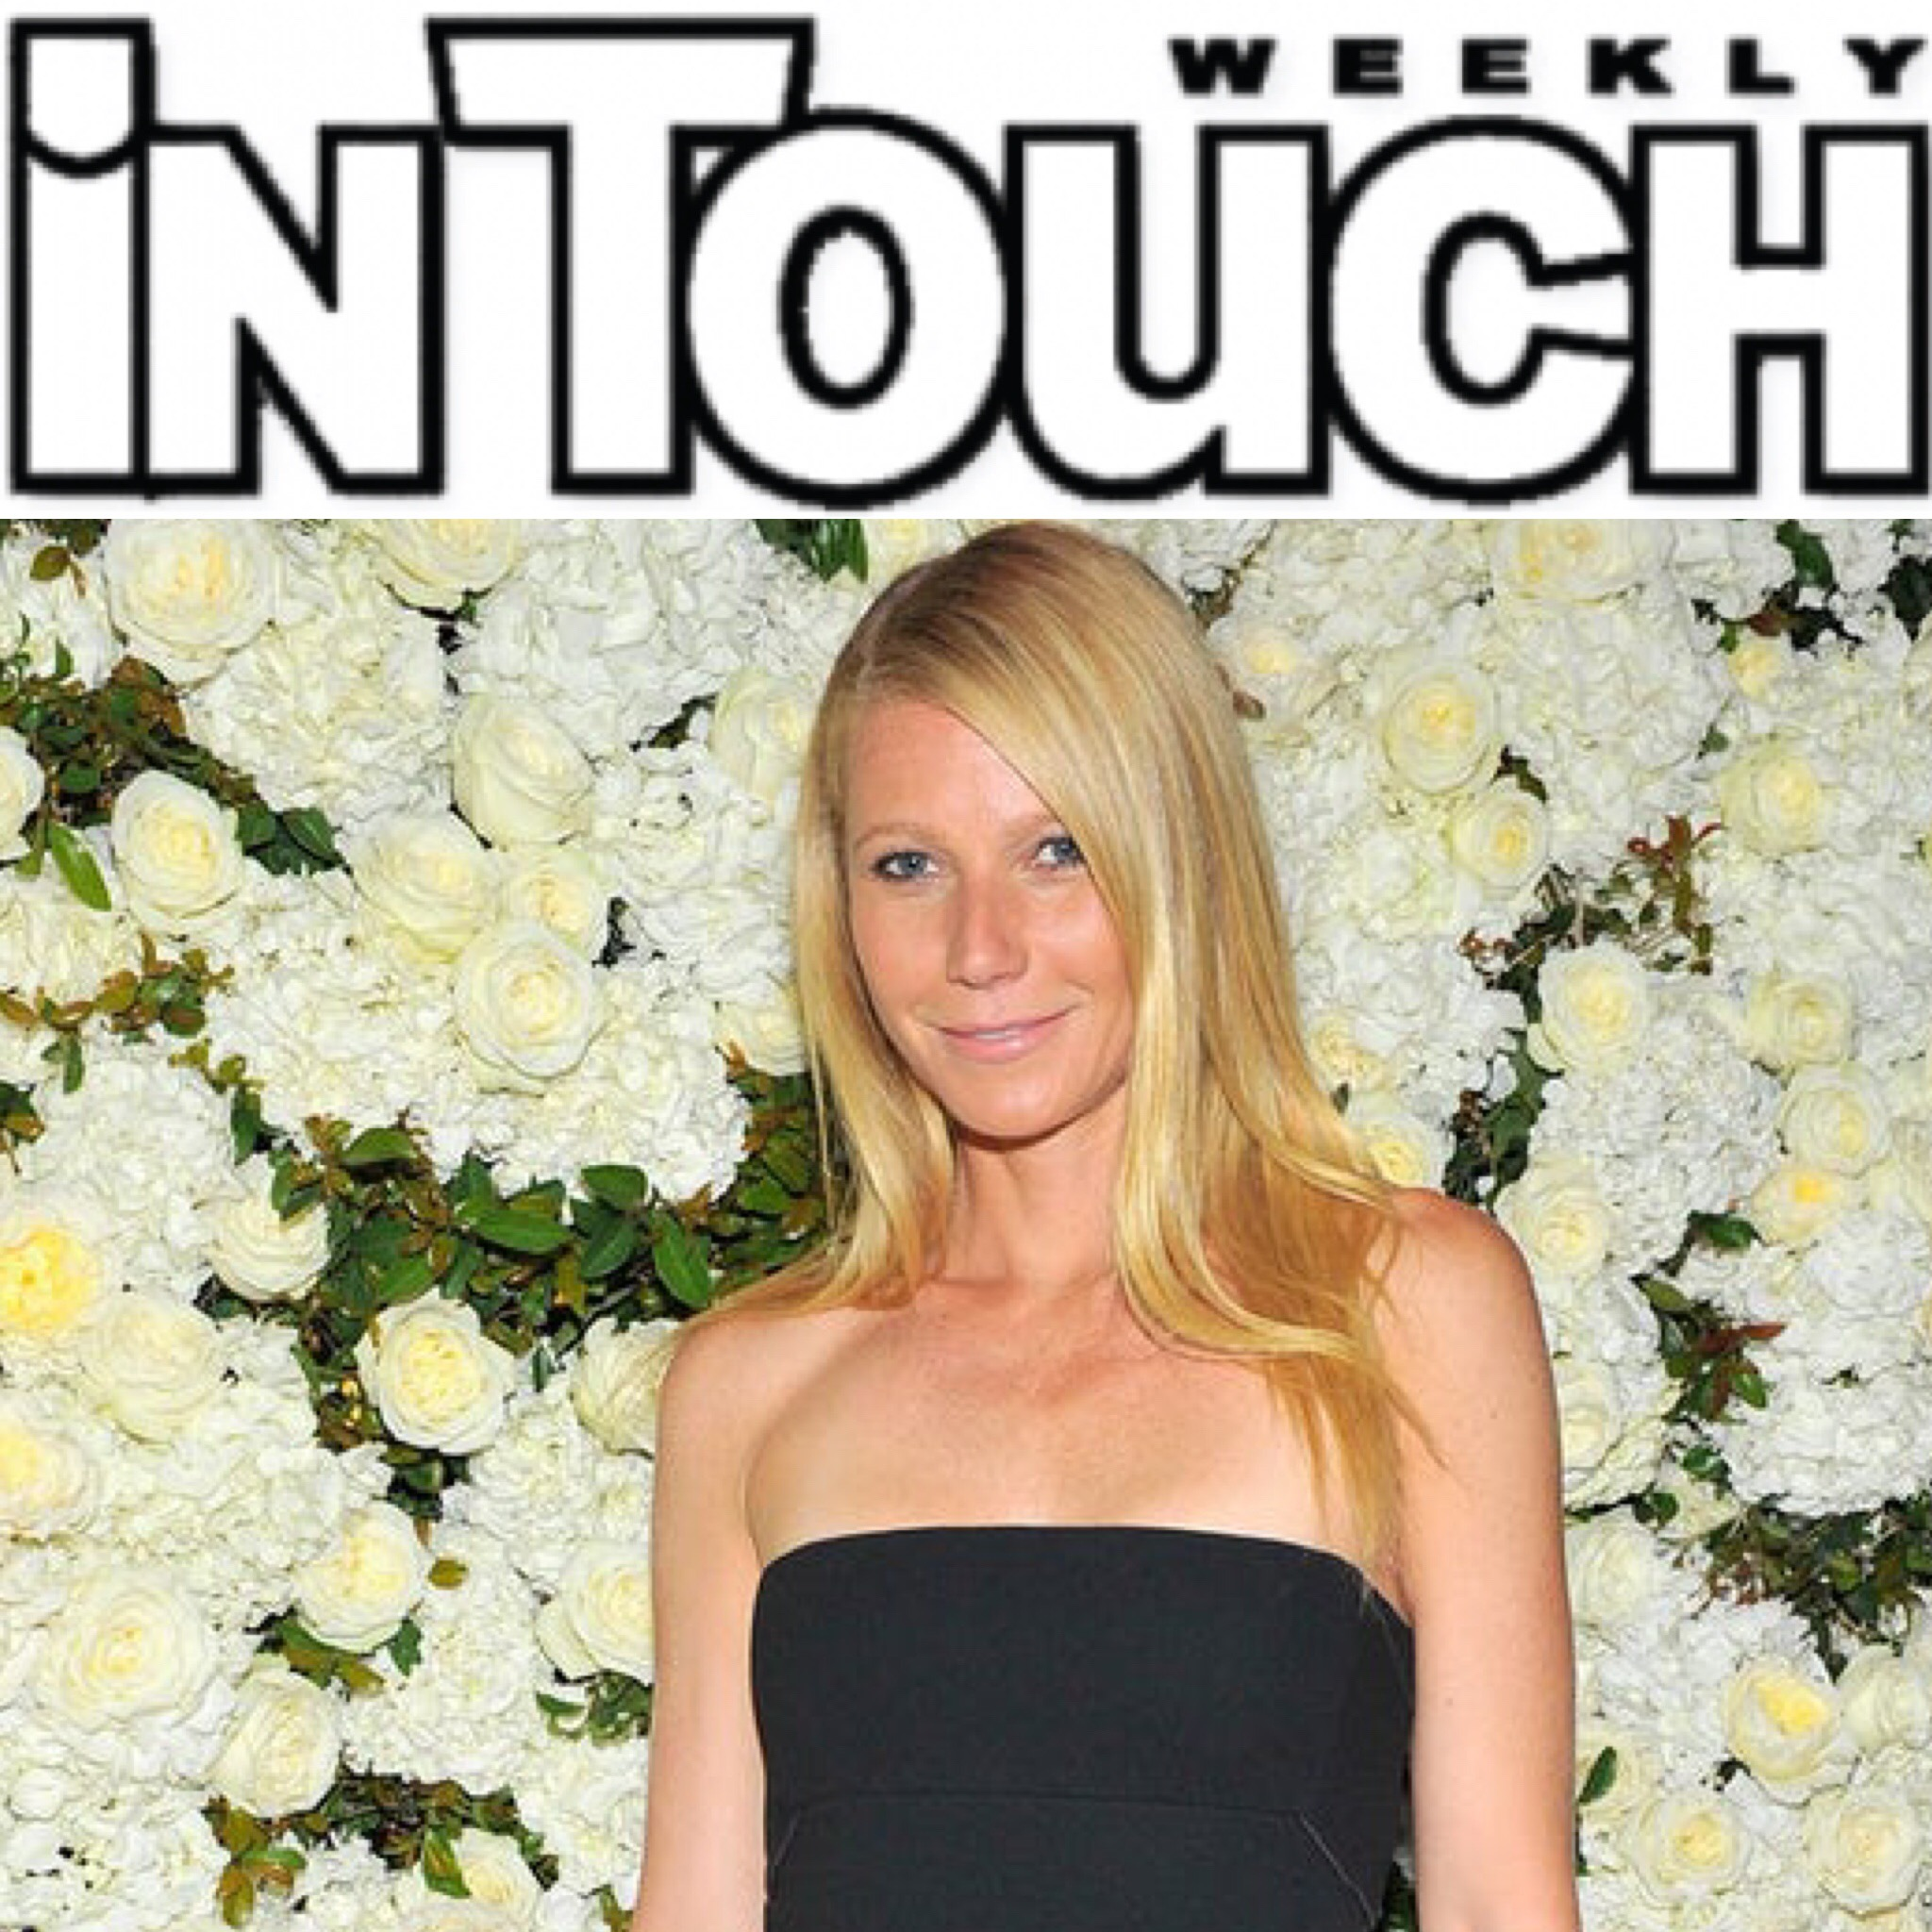 http://www.intouchweekly.com/posts/gwyneth-paltrow-only-lasted-4-days-out-of-her-1-week-food-stamp-challenge-56367